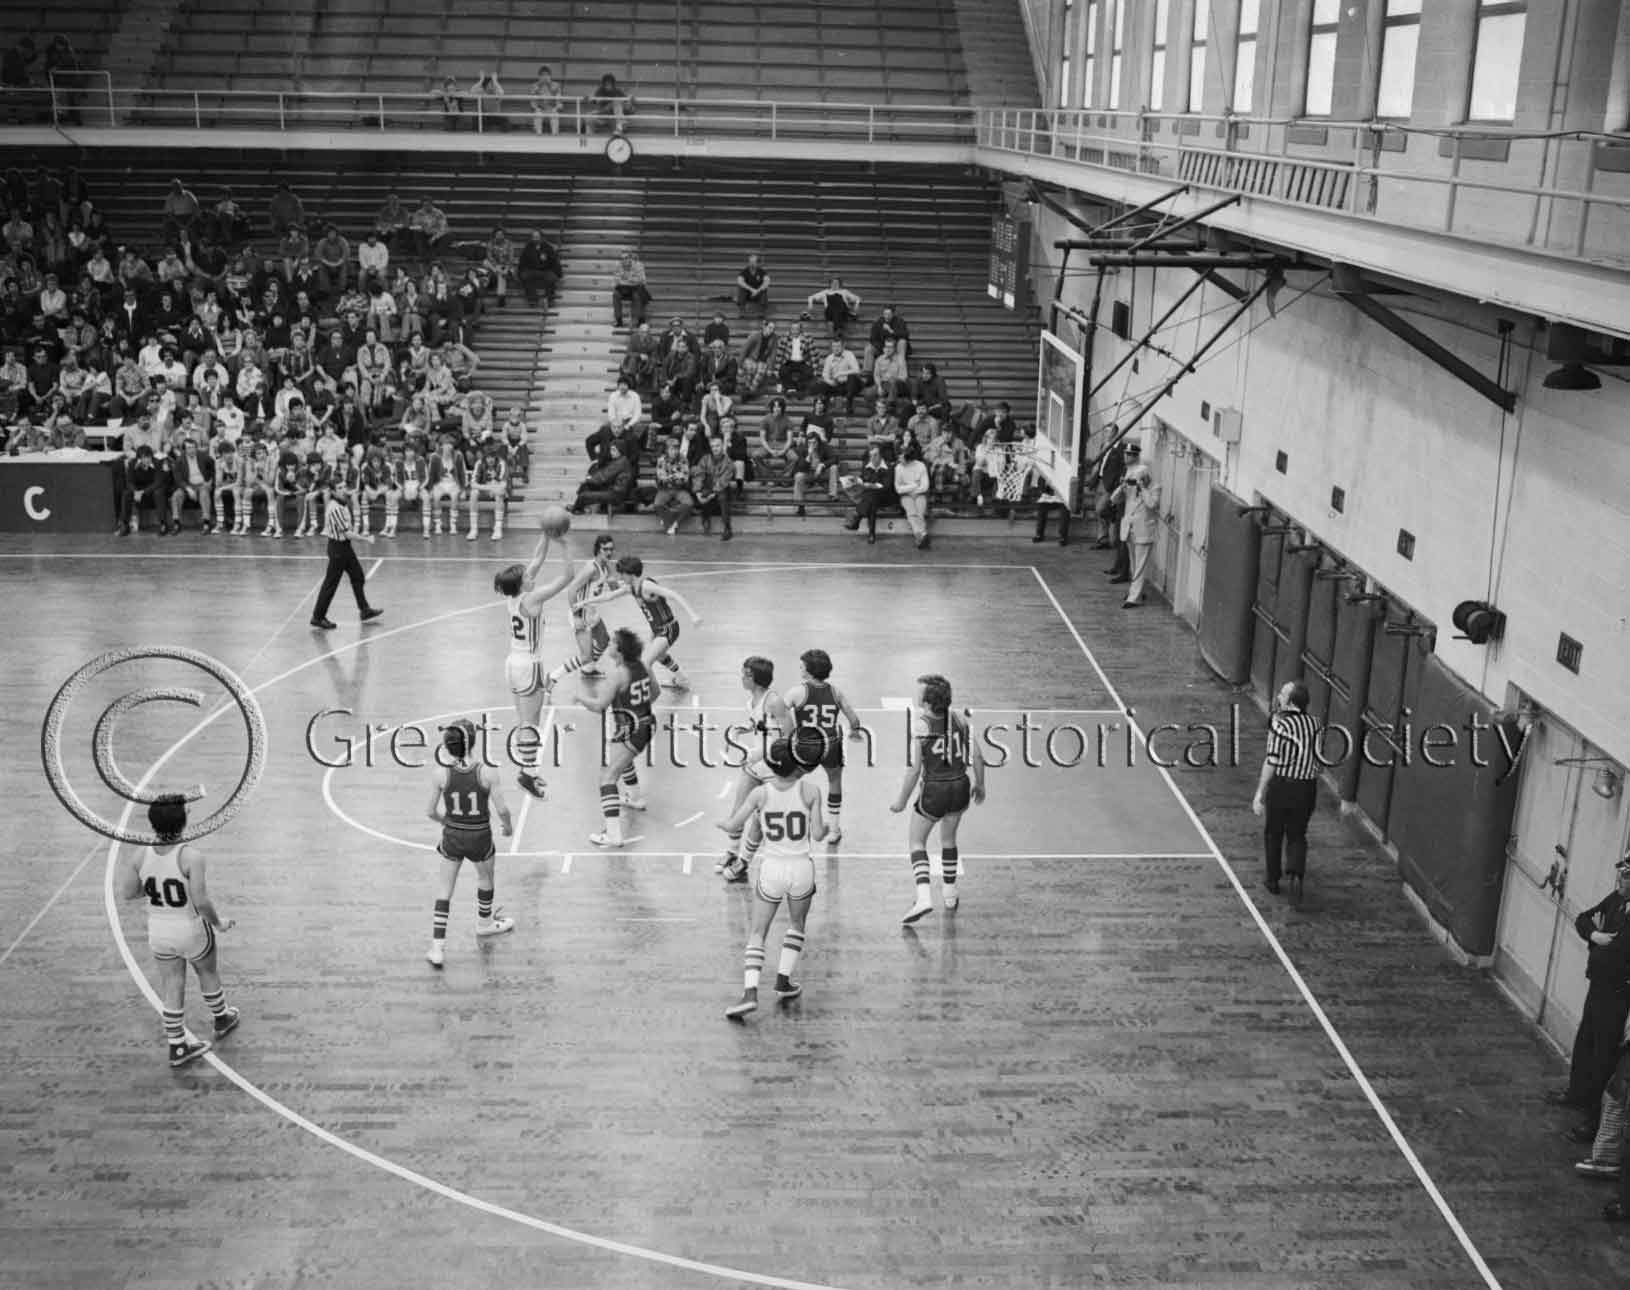 Pittston Area High School vs. Unknown Opponent (1976), Scranton, PA. Sunday Dispatch Photographic Collection (1976.1.1102), Greater Pittston Historical Society, Pittston, PA.